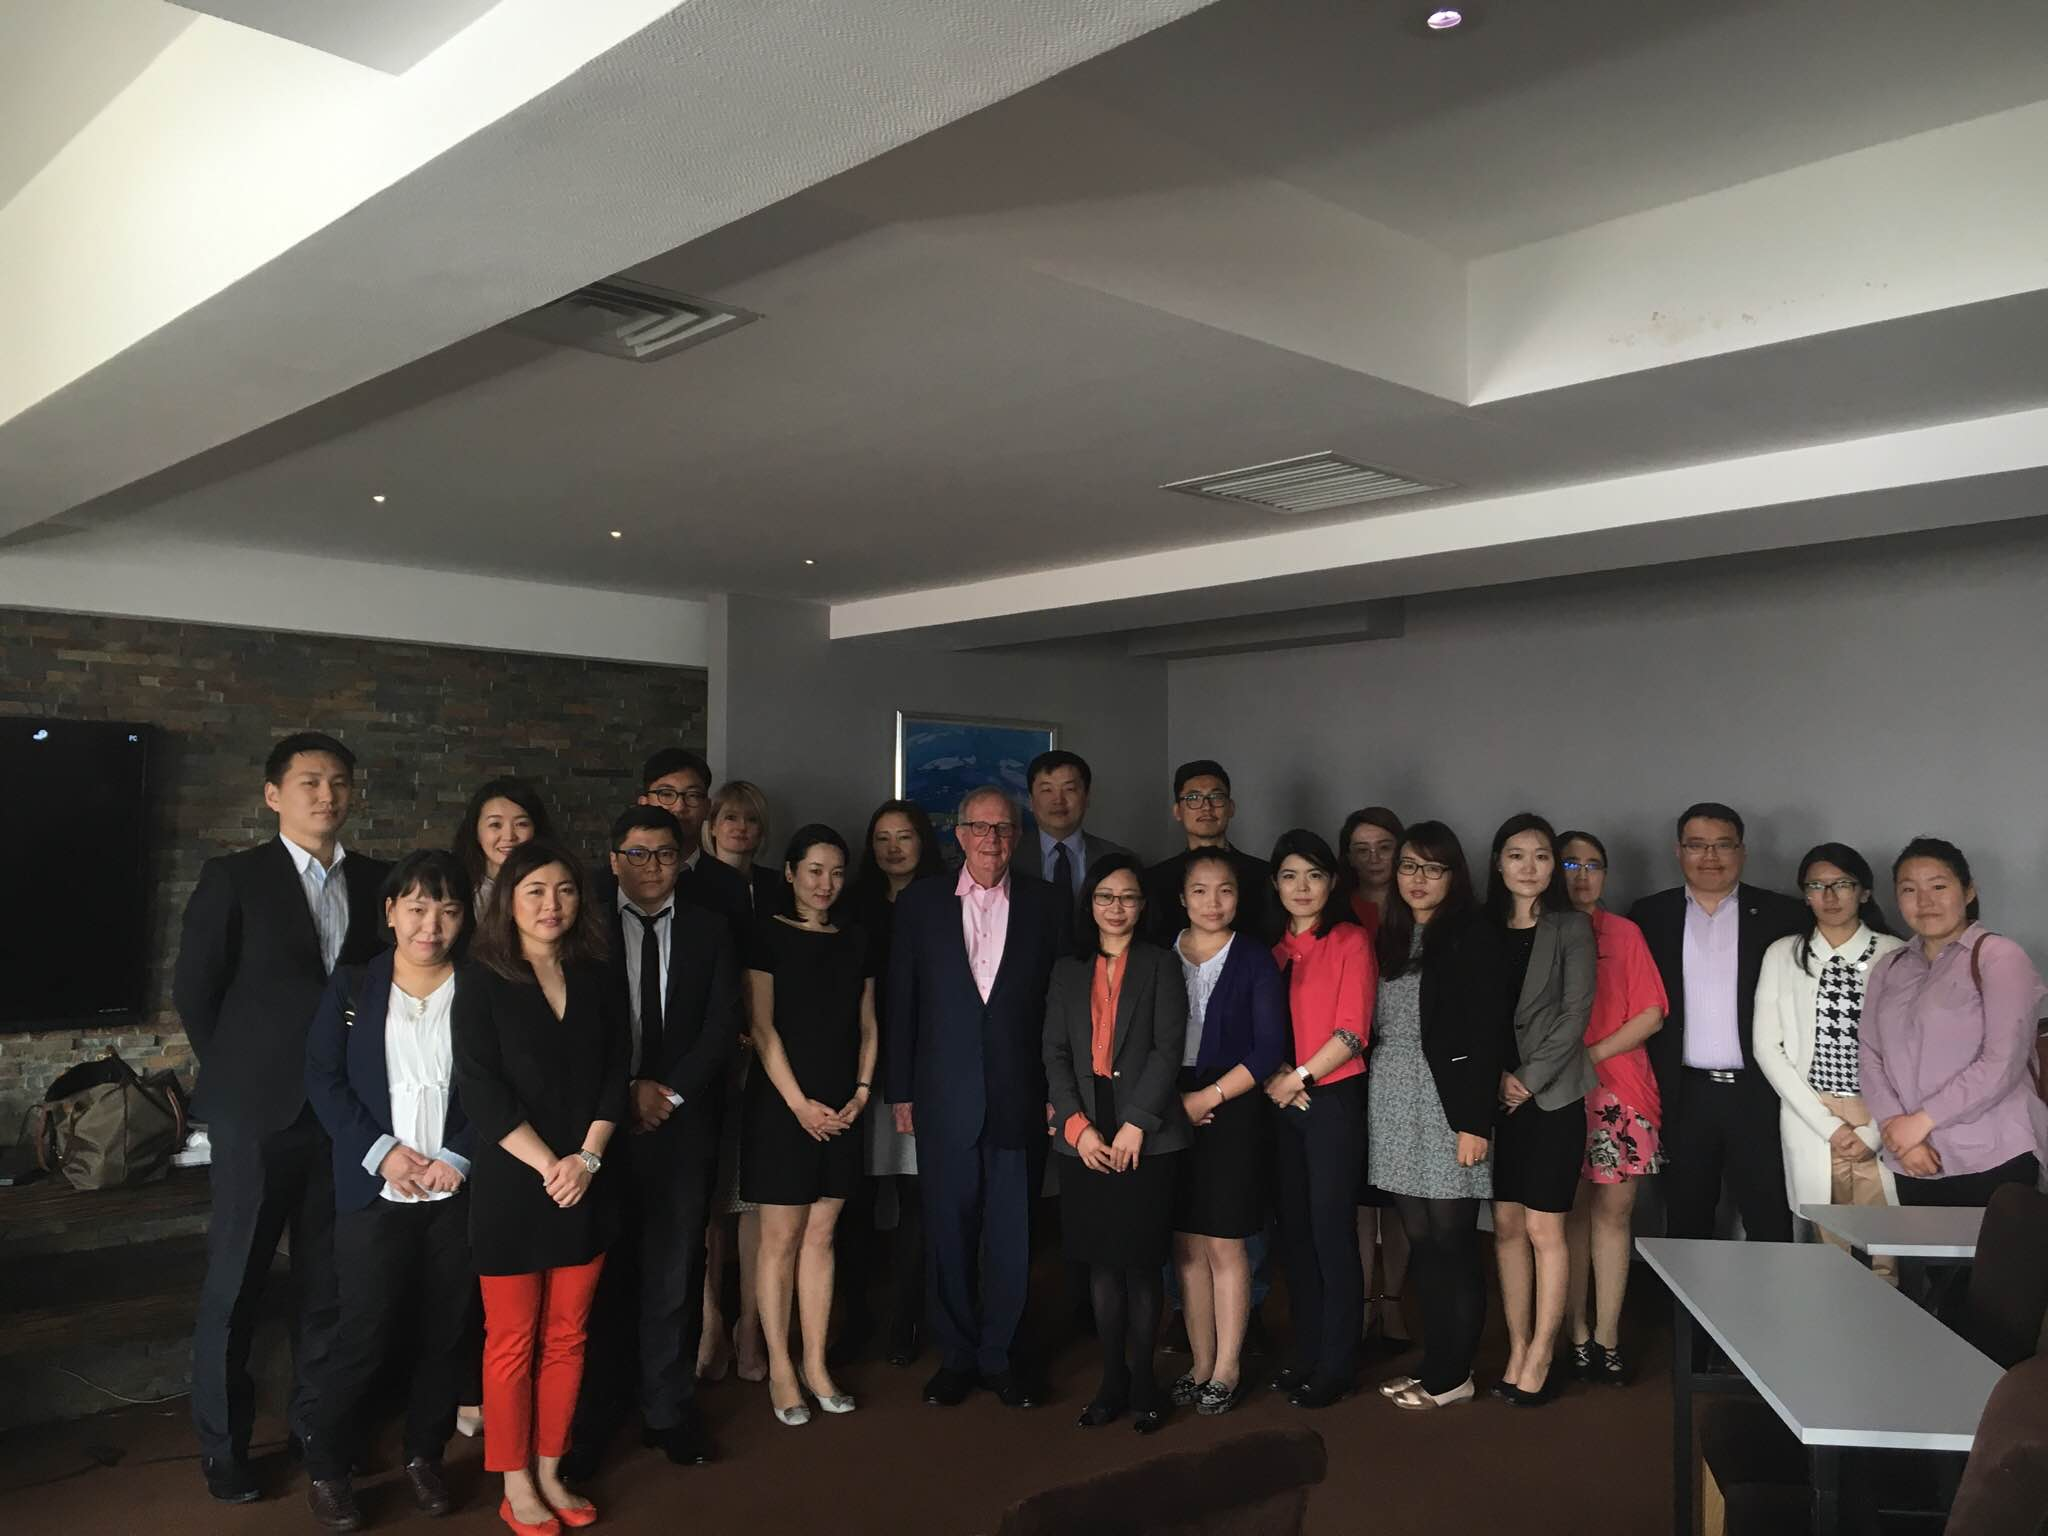 Lecture held by Professor Philip R Wood, a head of Allen & Overy Global Law Intelligence Unit.